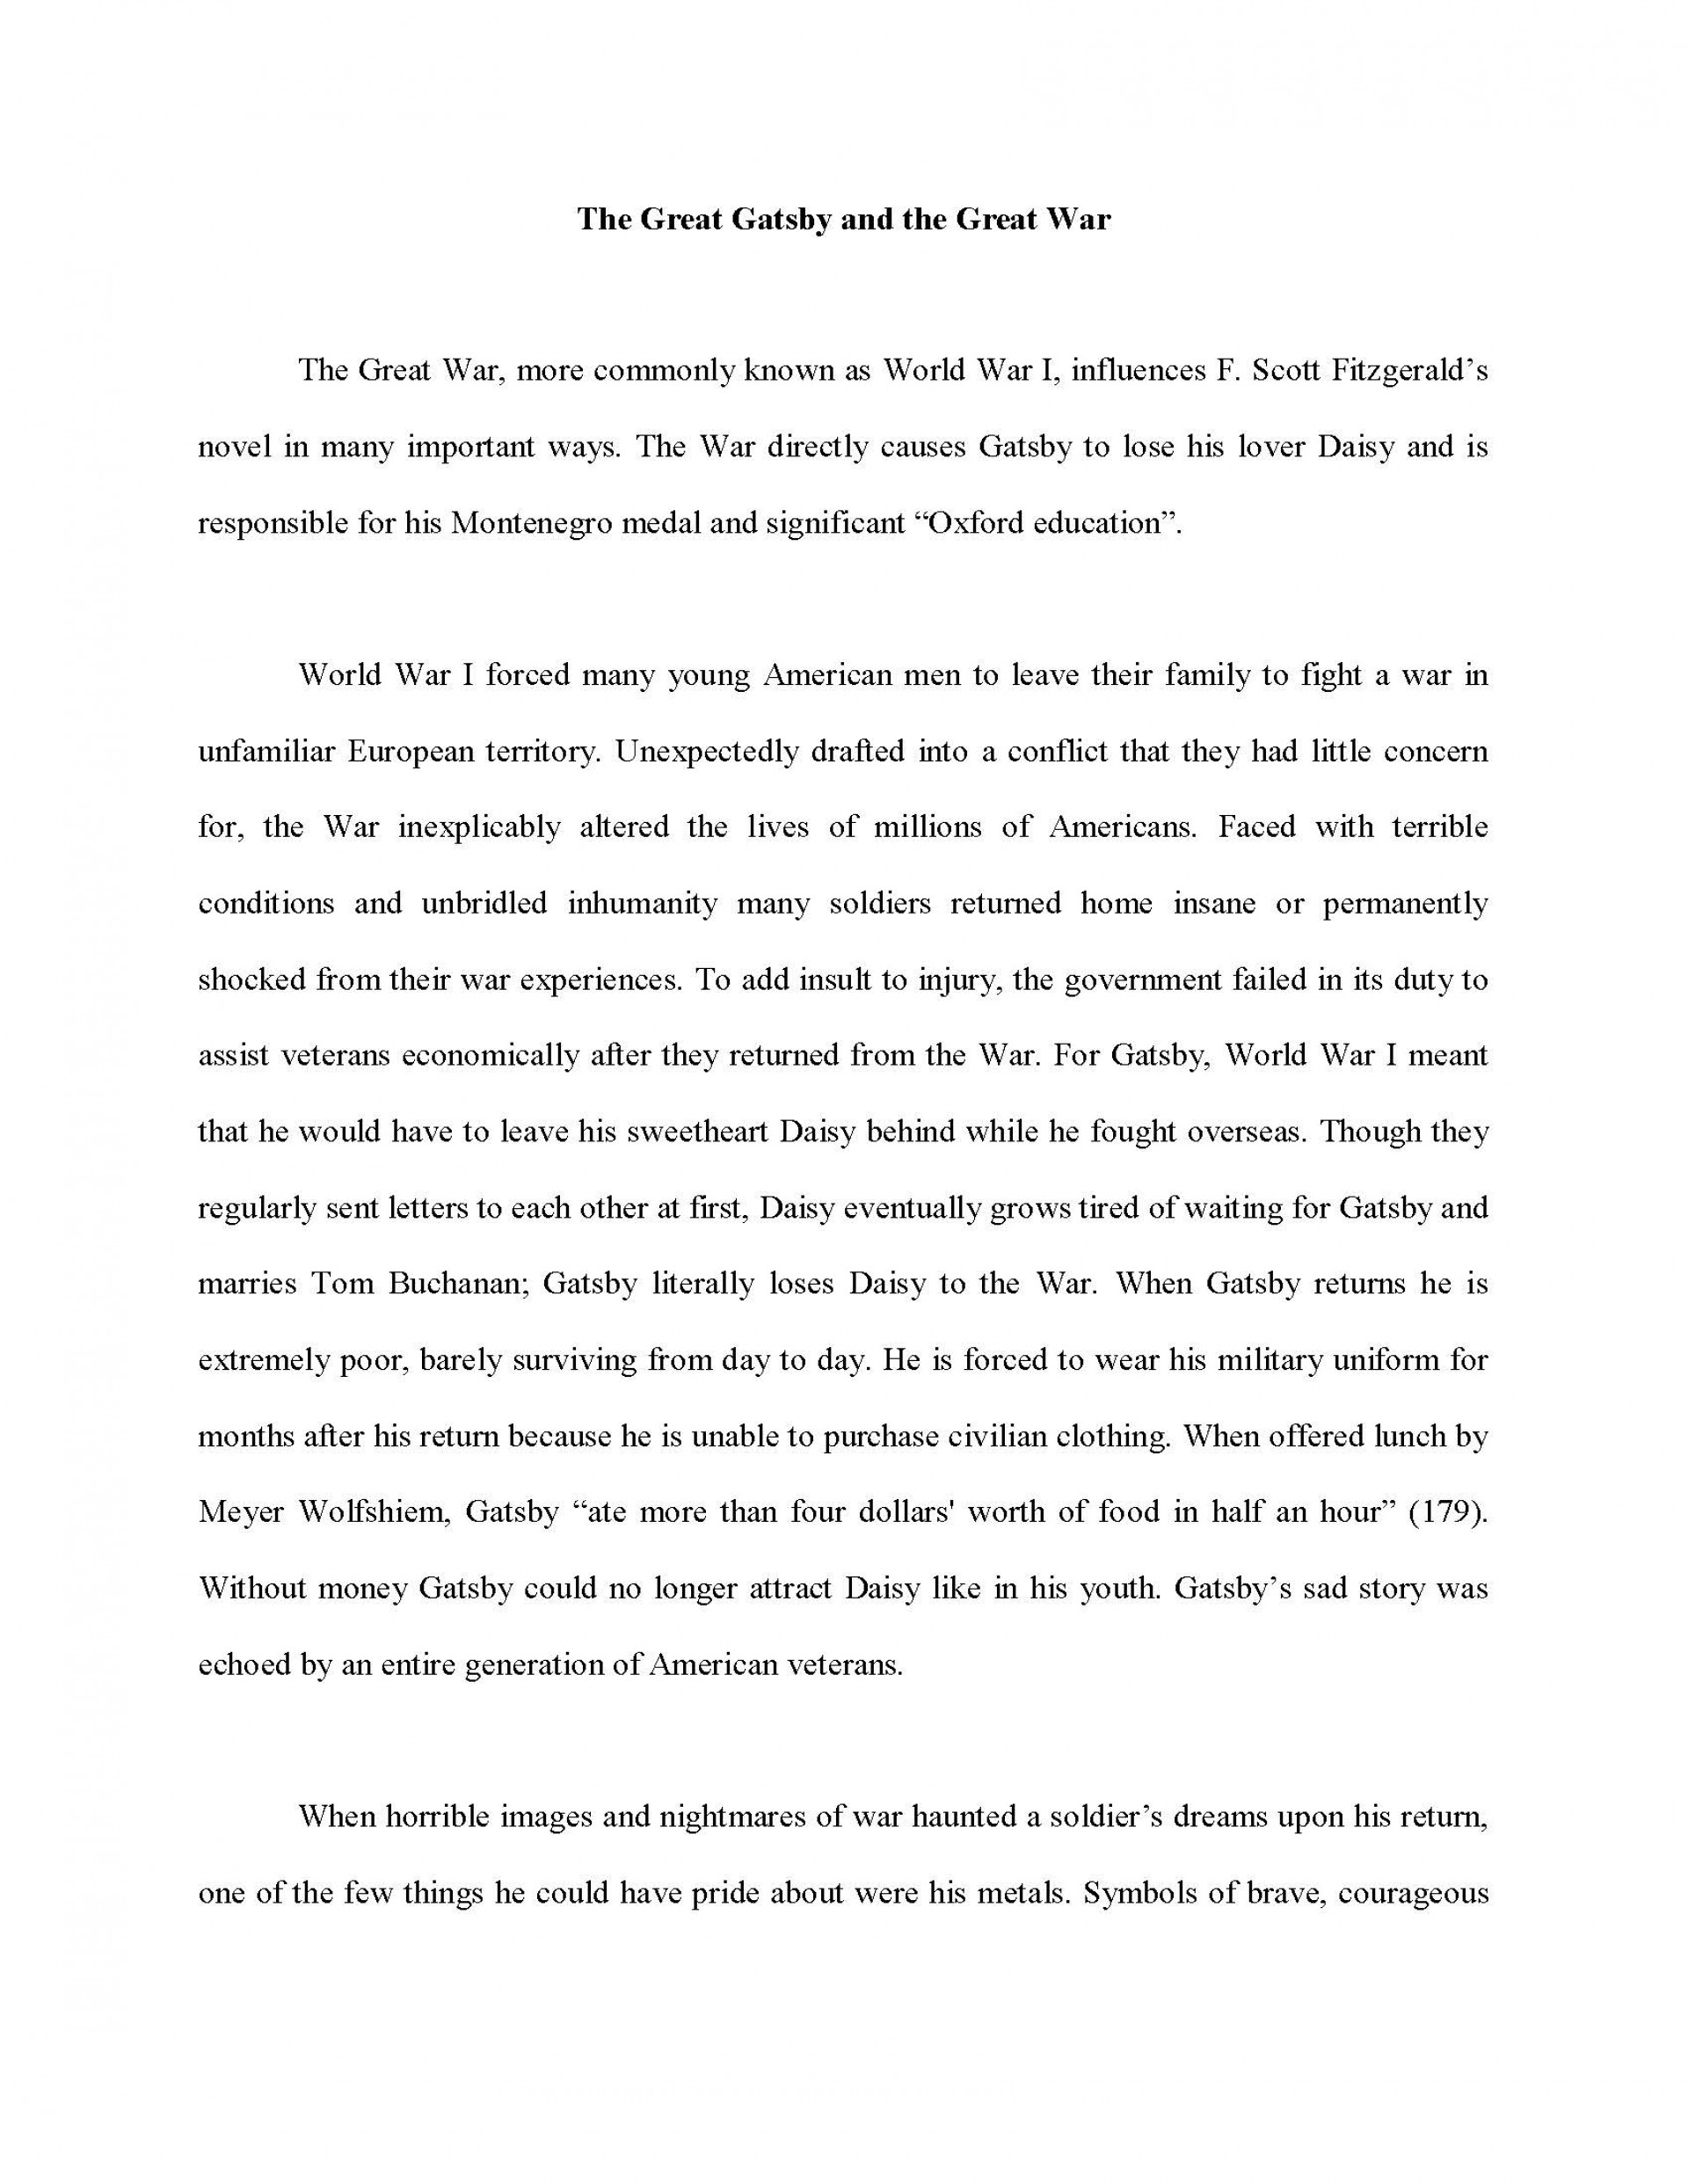 009 Lyric Essays Informative Sample Awesome Essay Examples 1920